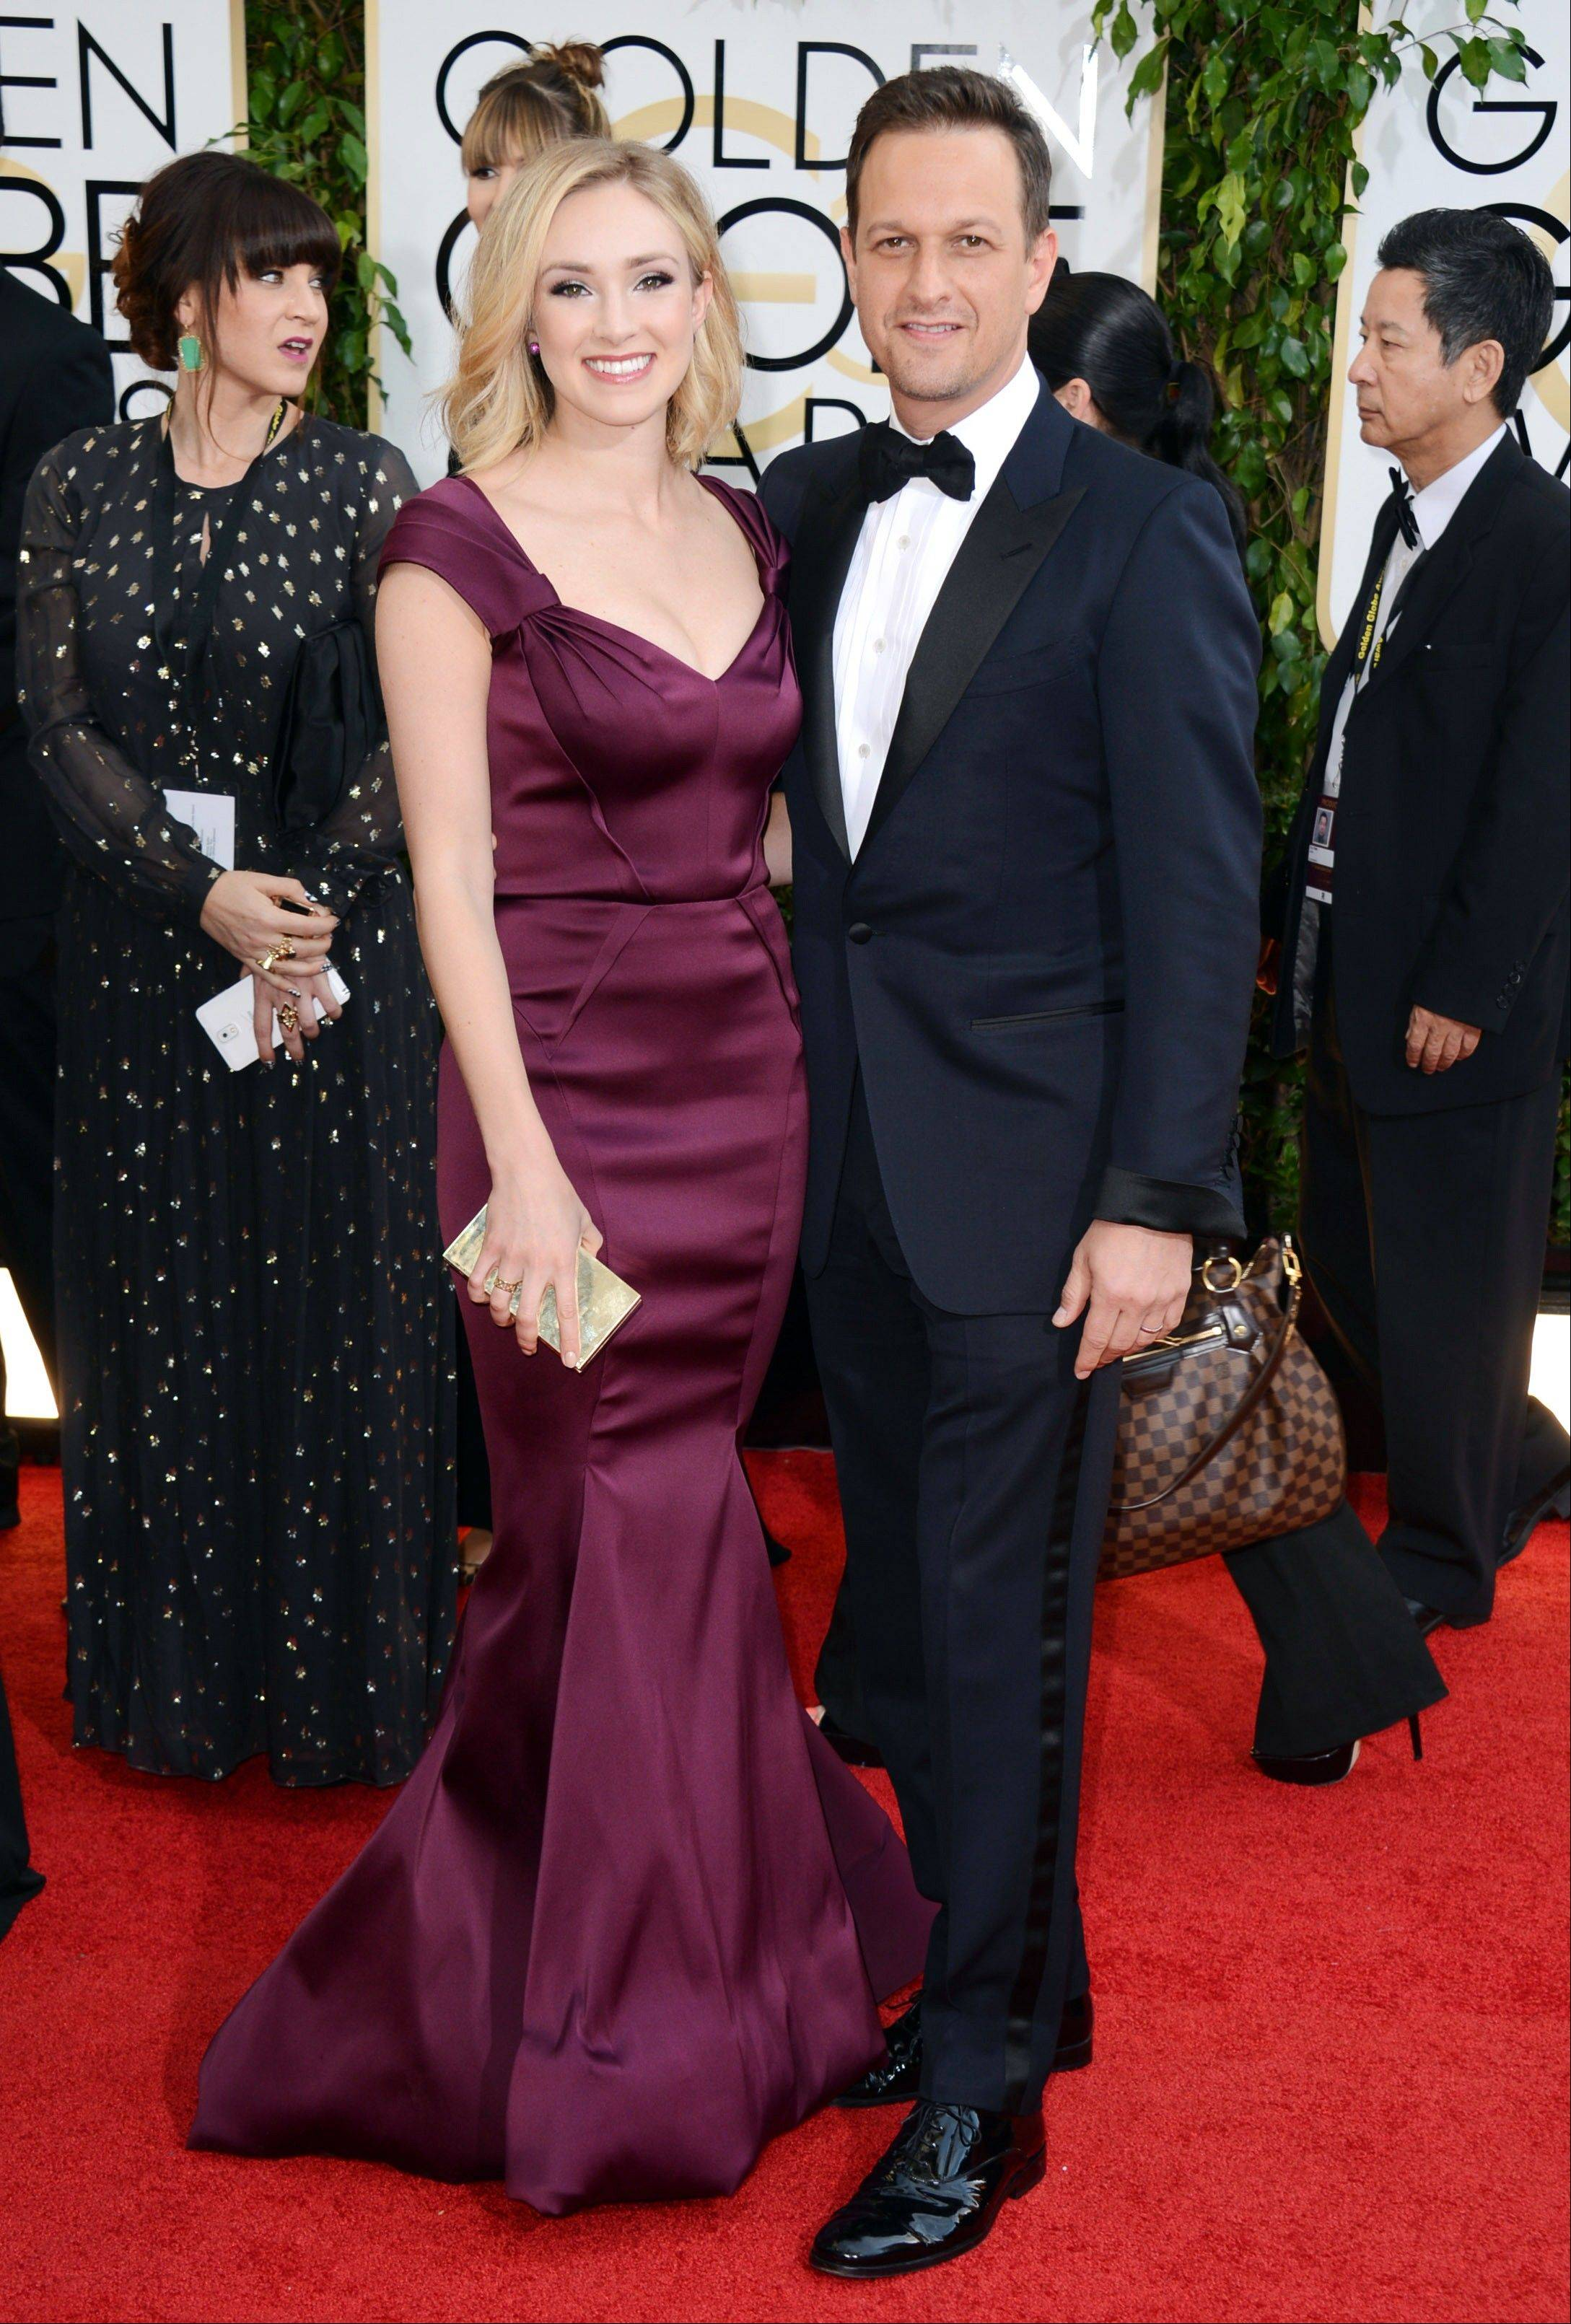 """The Good Wife"" star Josh Charles walks the red carpet with his wife Sophie Flack."